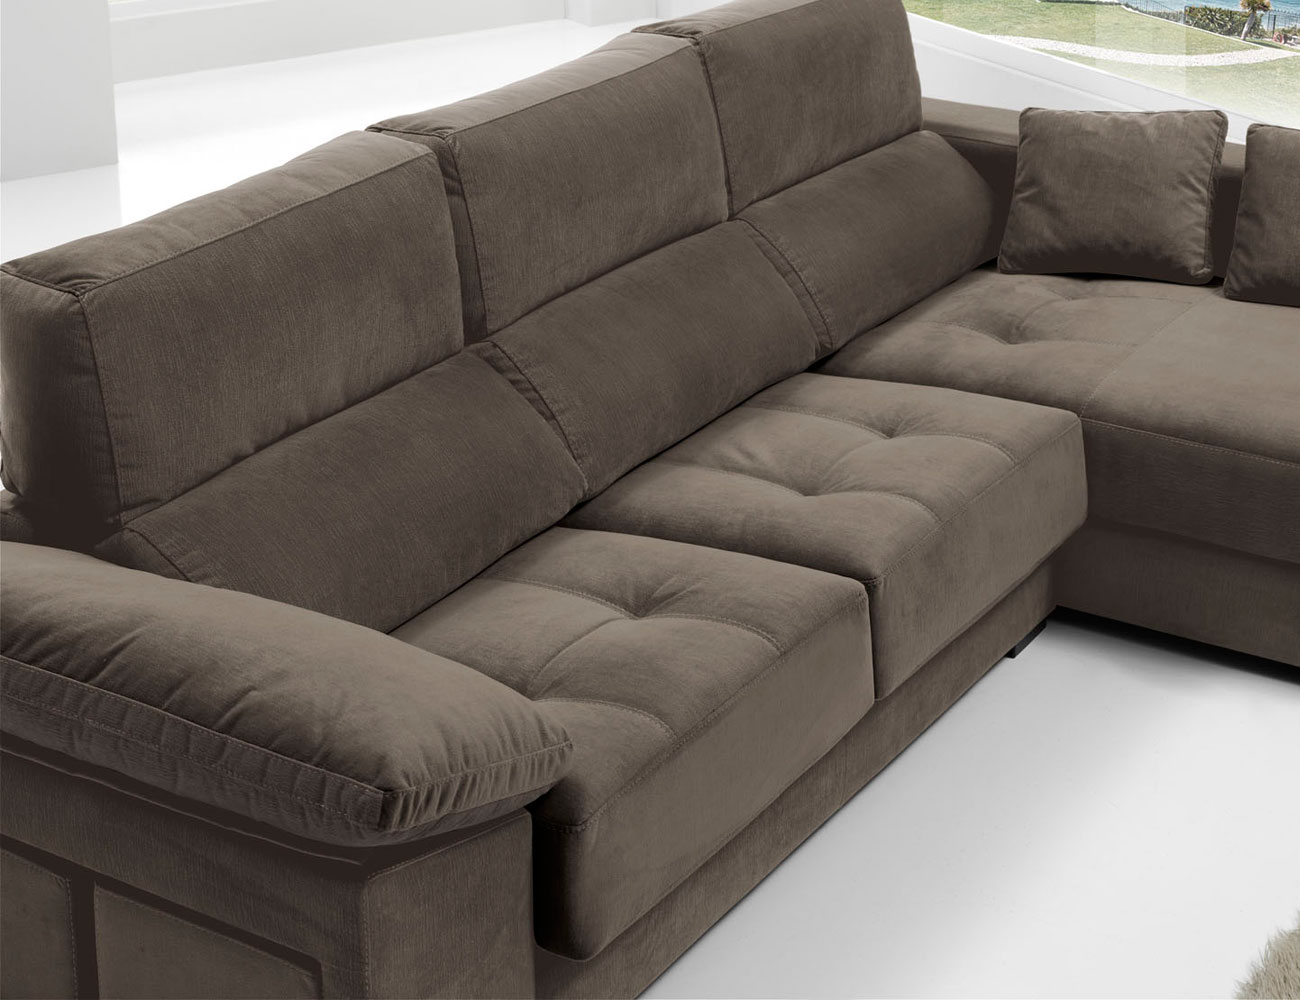 Sofa chaiselongue anti manchas bering pouf 26